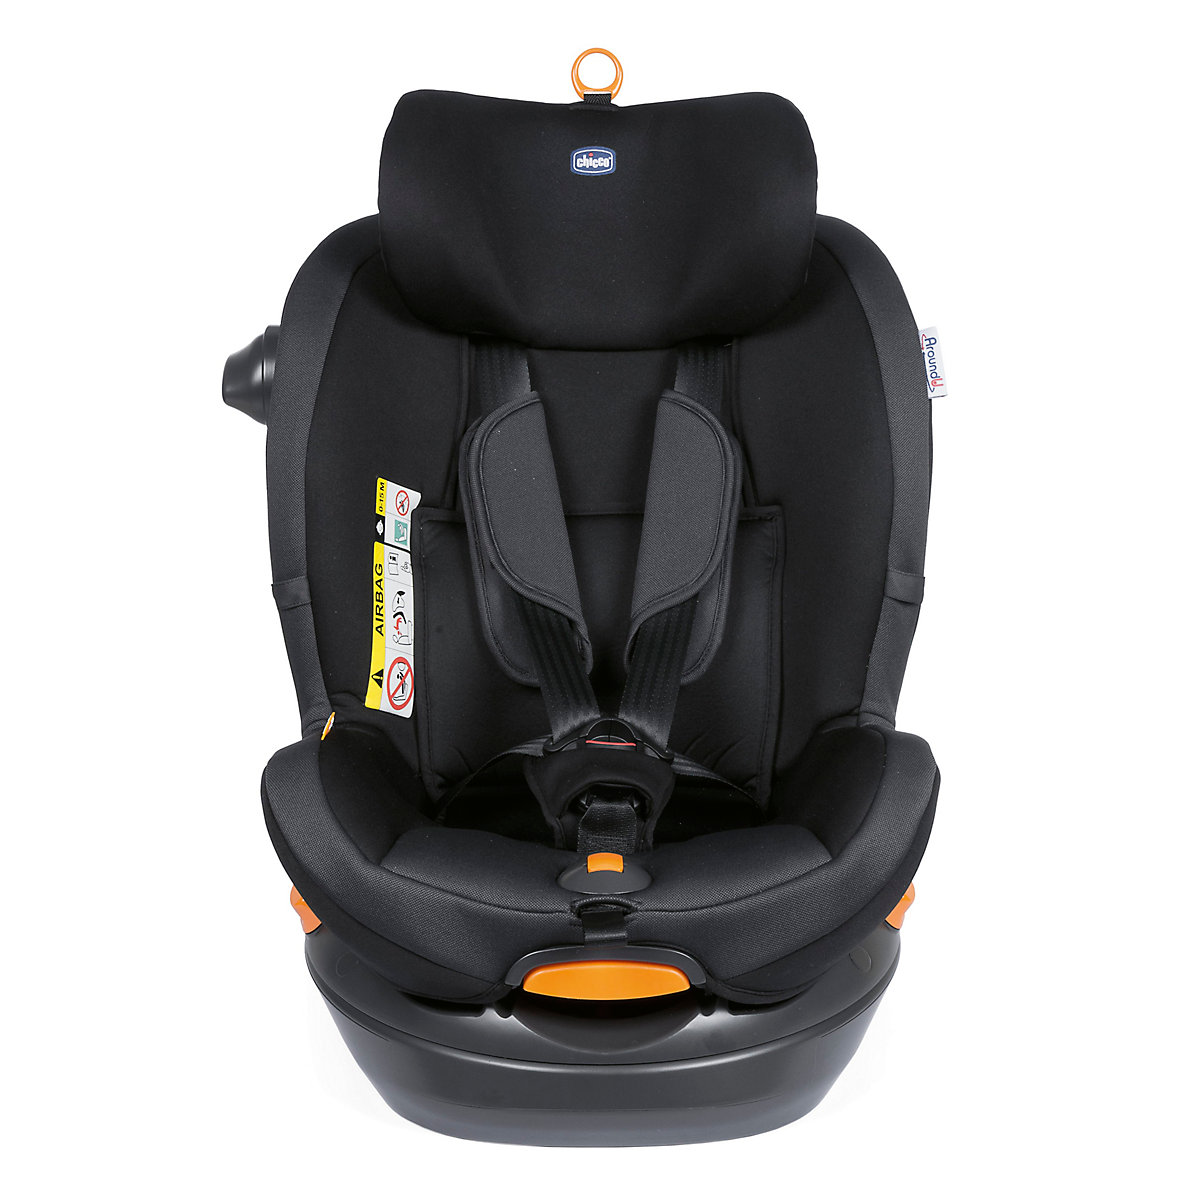 Chicco around u i-size combination car seat